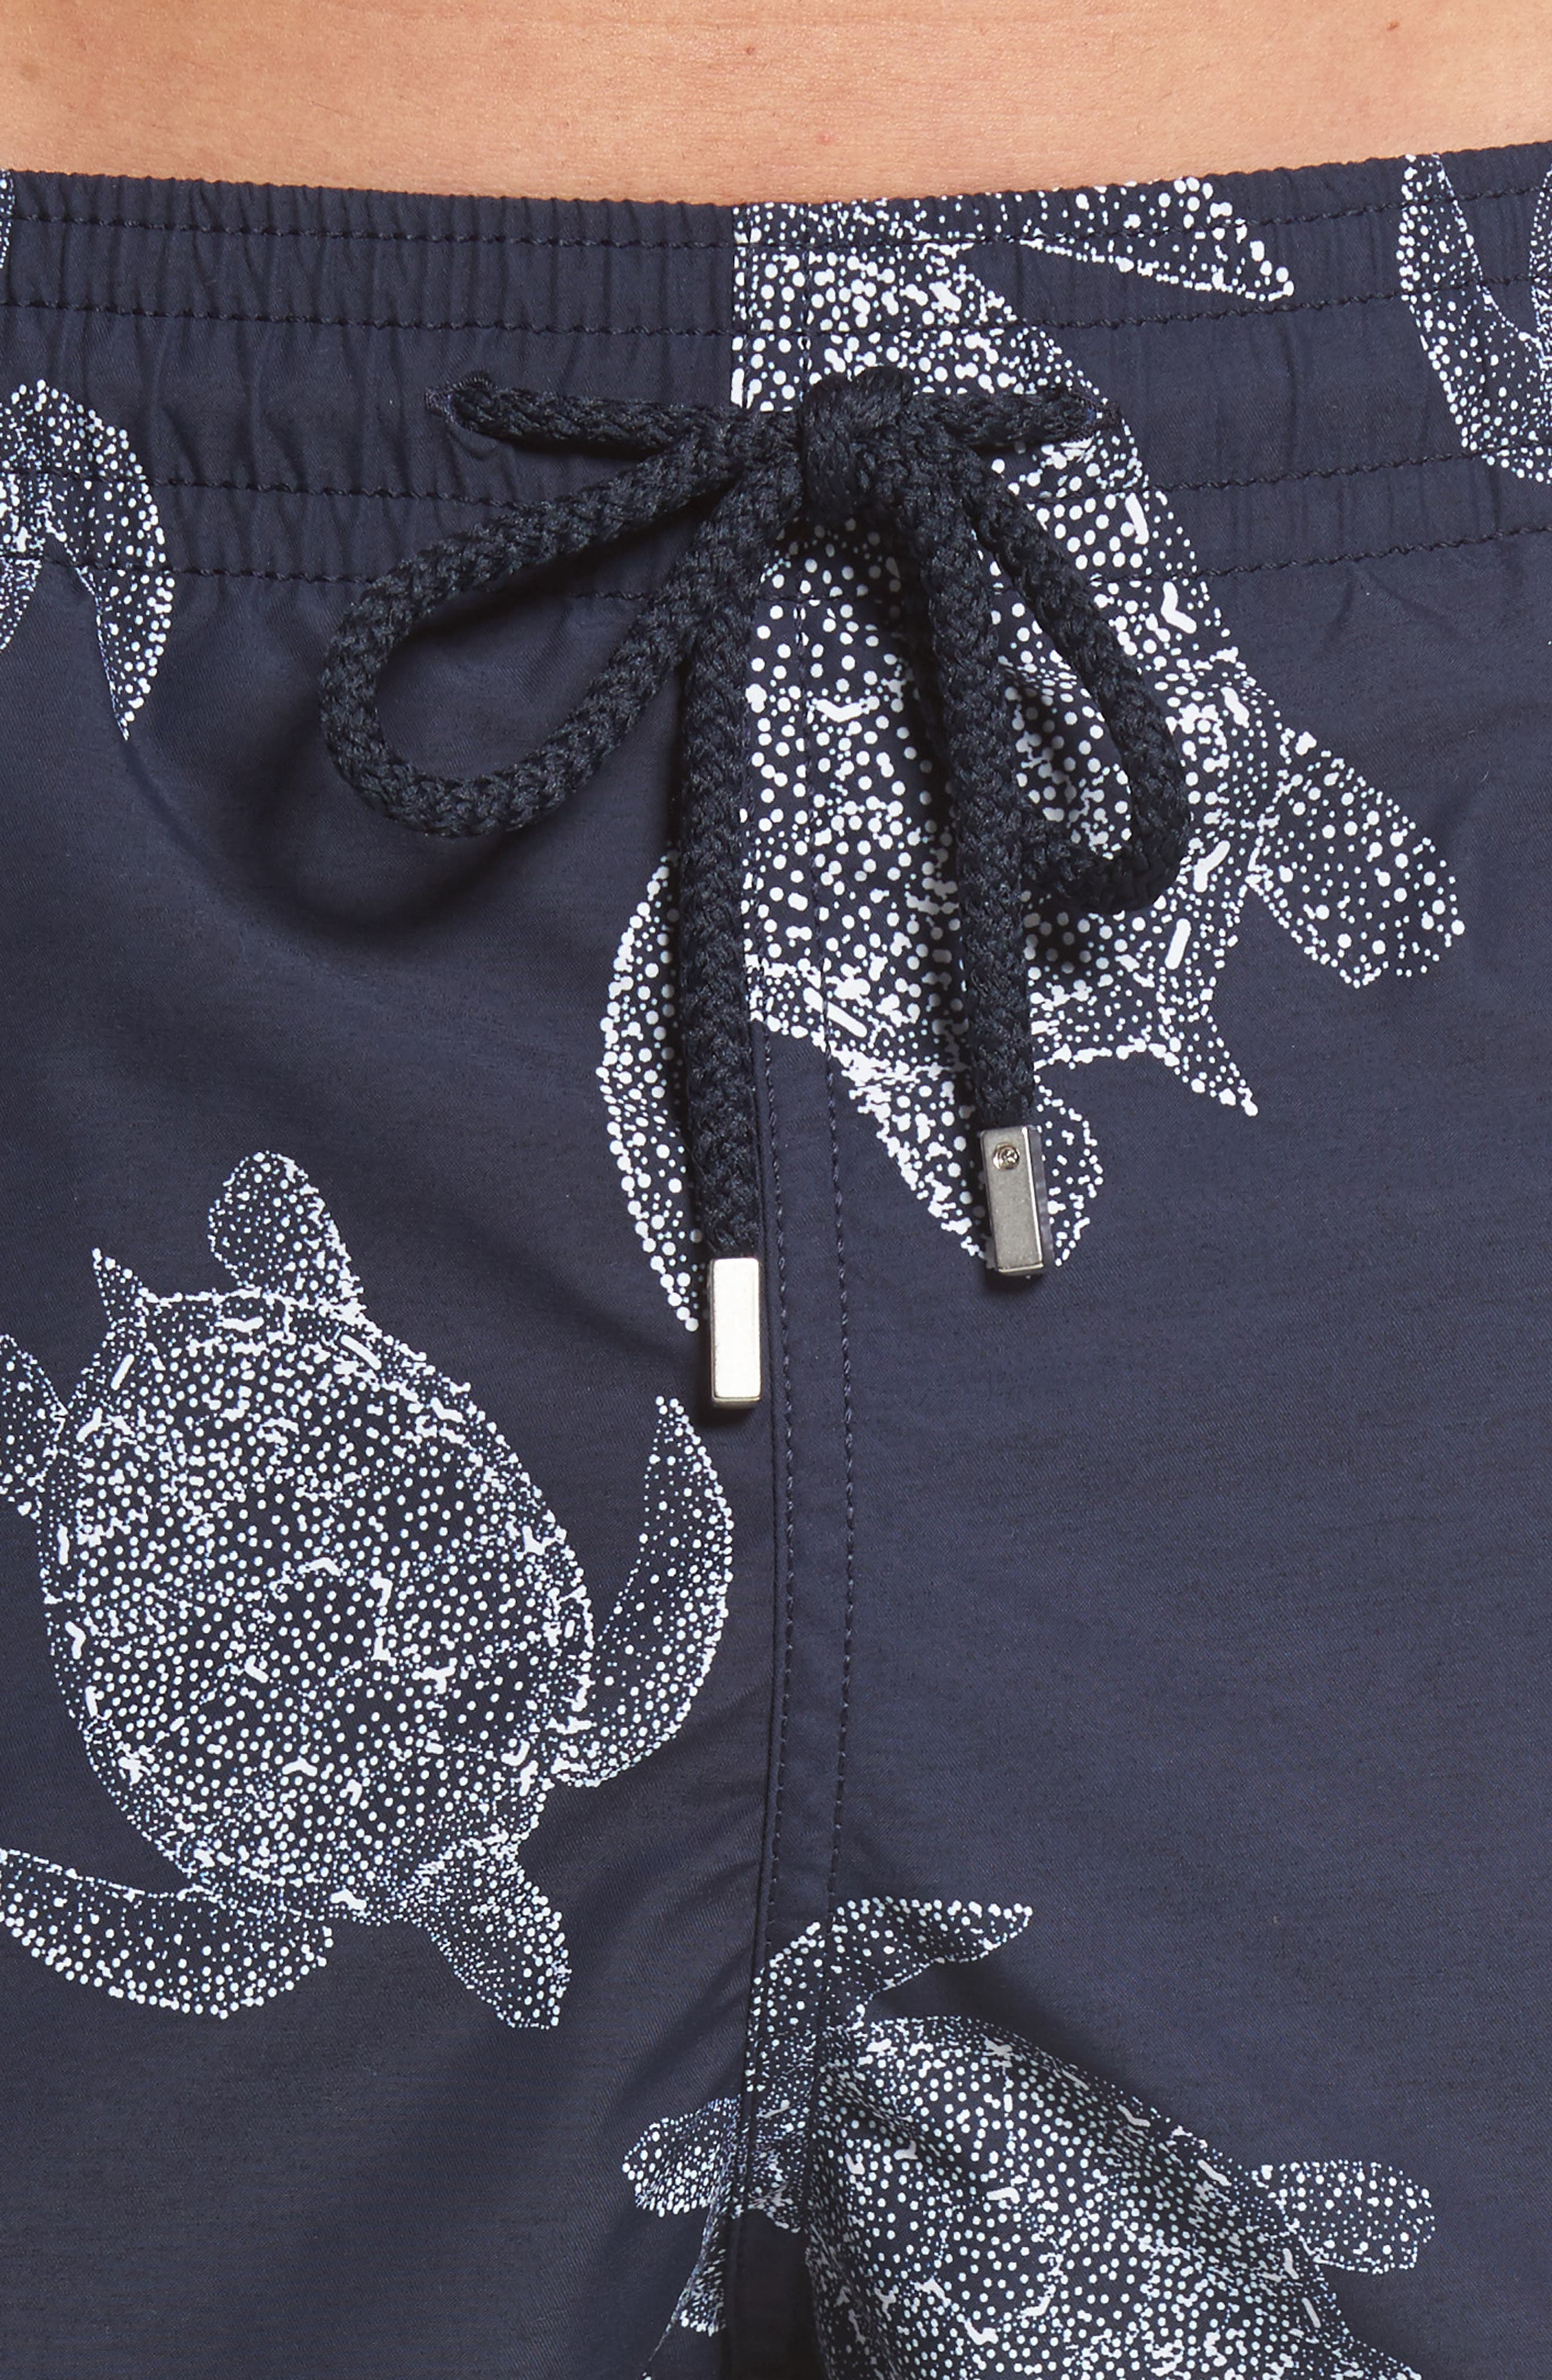 Moorea Sharkskin Turtles Print Swim Trunks,                             Alternate thumbnail 4, color,                             NAVY BLUE